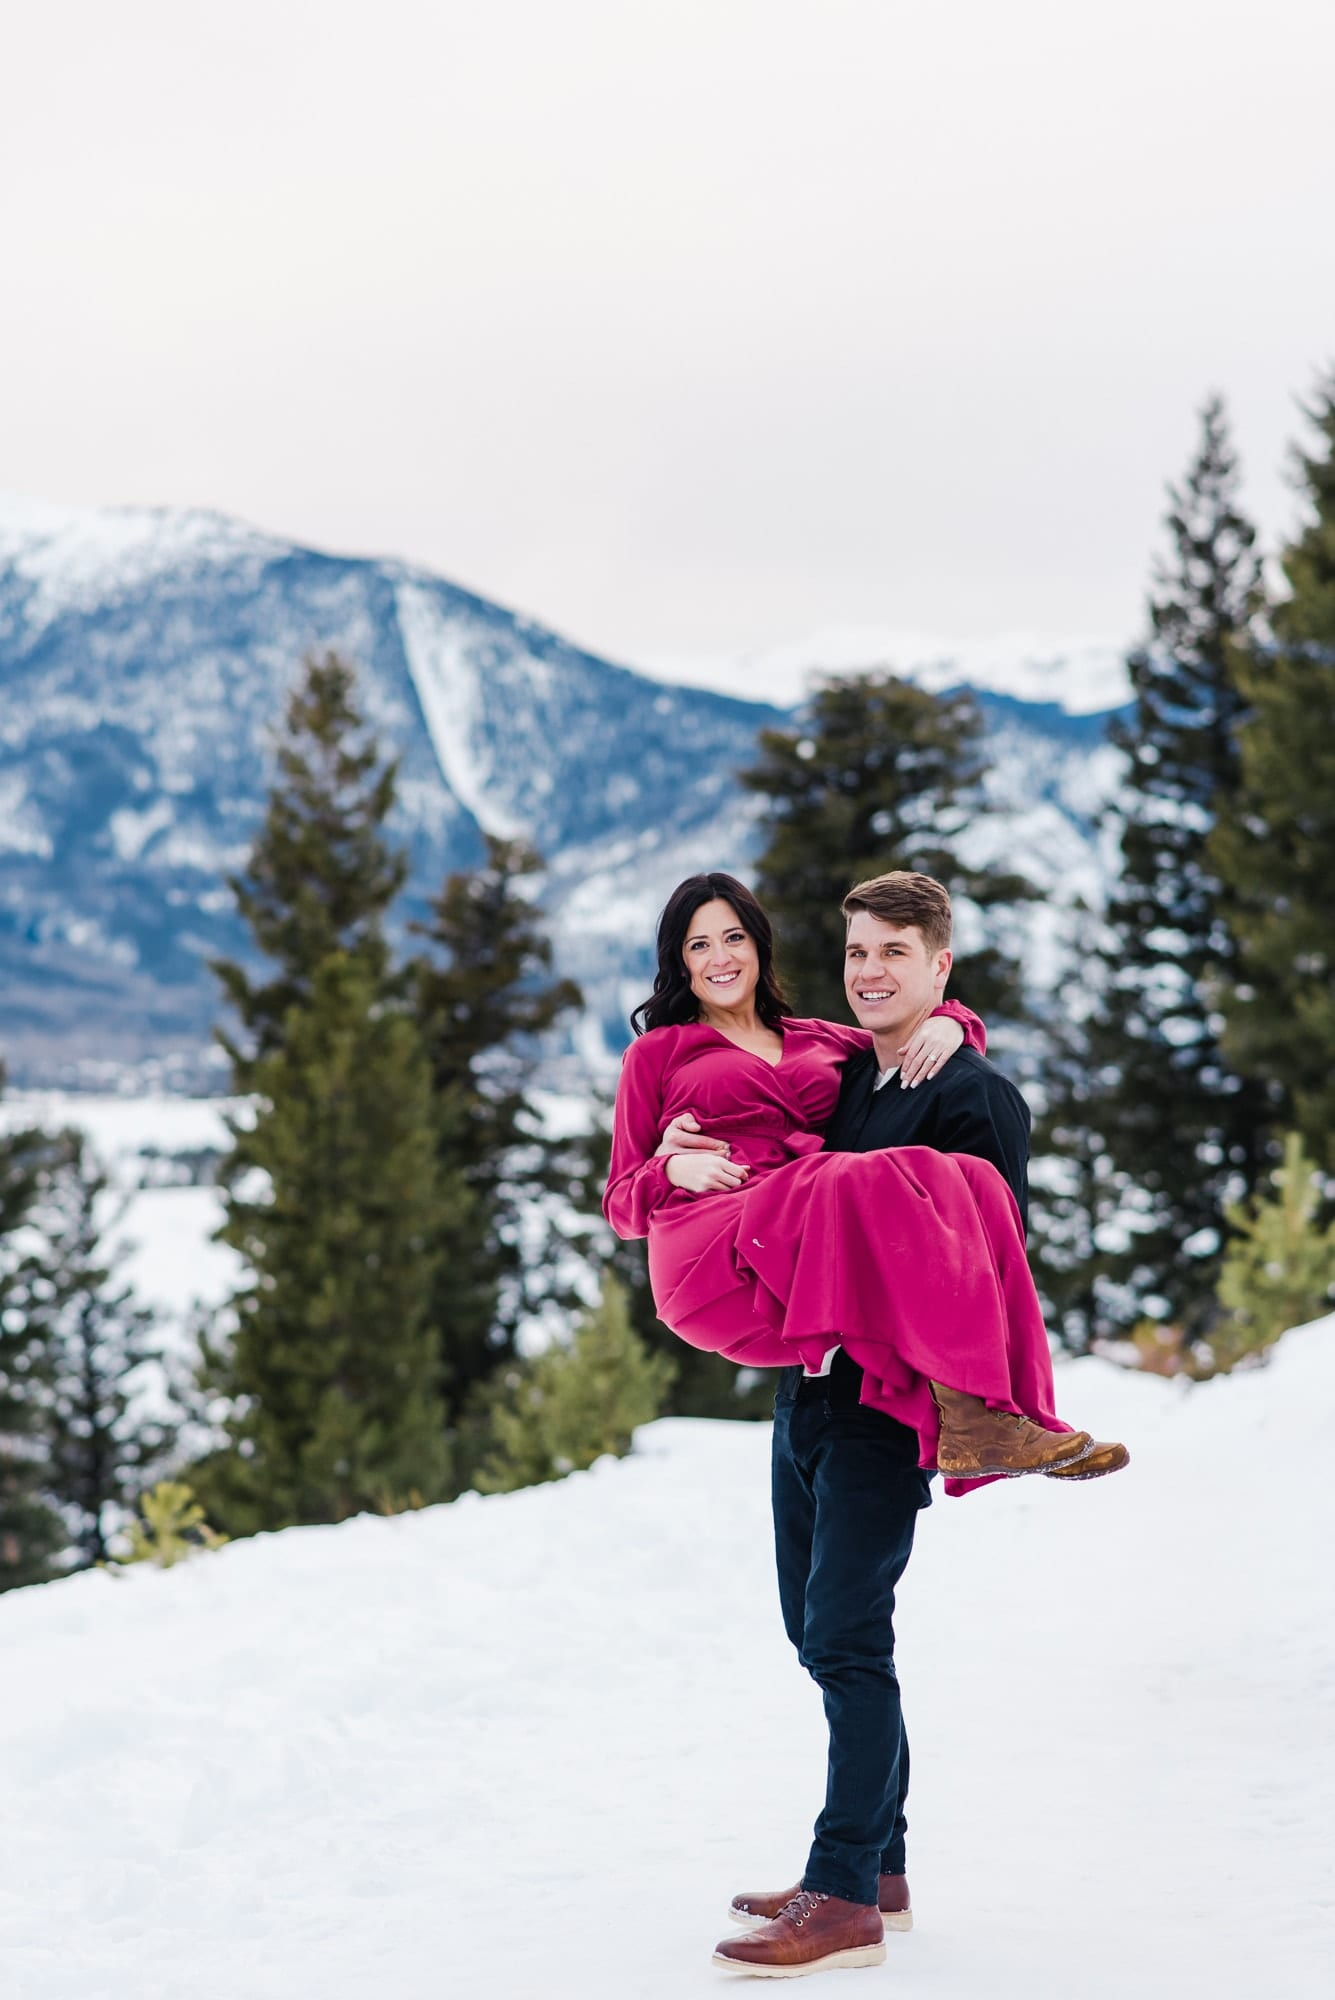 Colorado Mountain Engagement Photos by Josie V